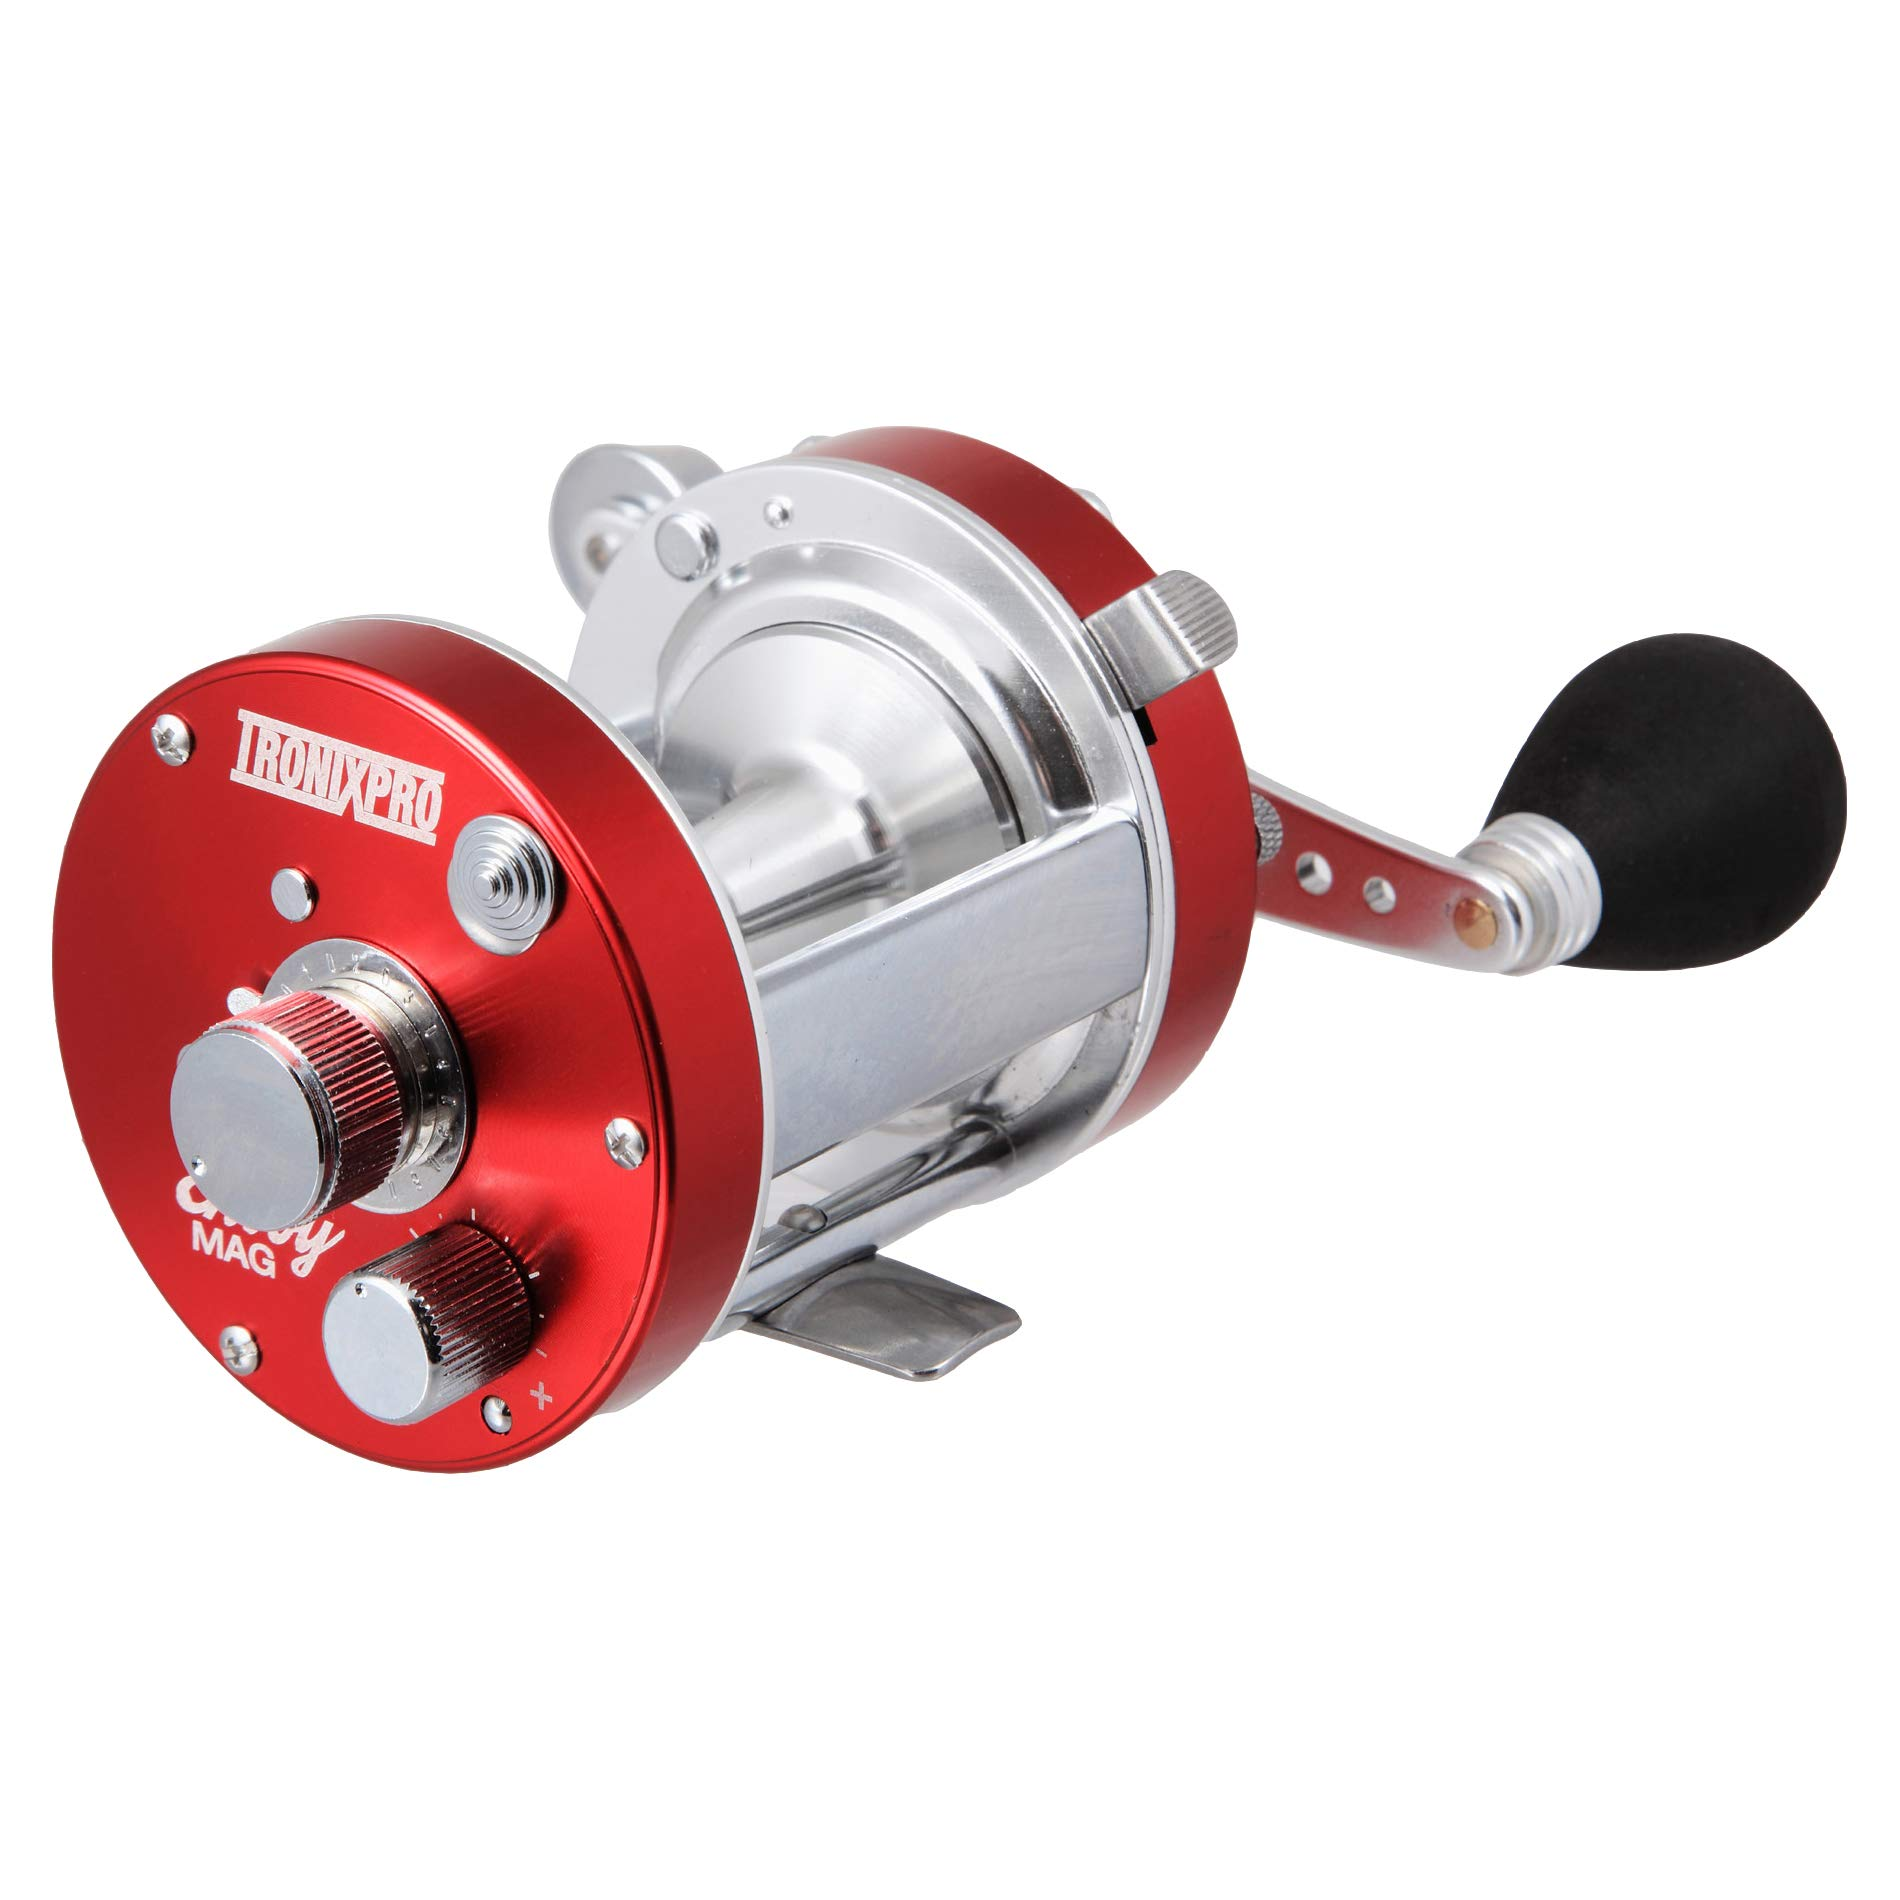 Tronixpro Tournament /& Envoy Multipliers /& Fixed Spool Reels and Power Handles